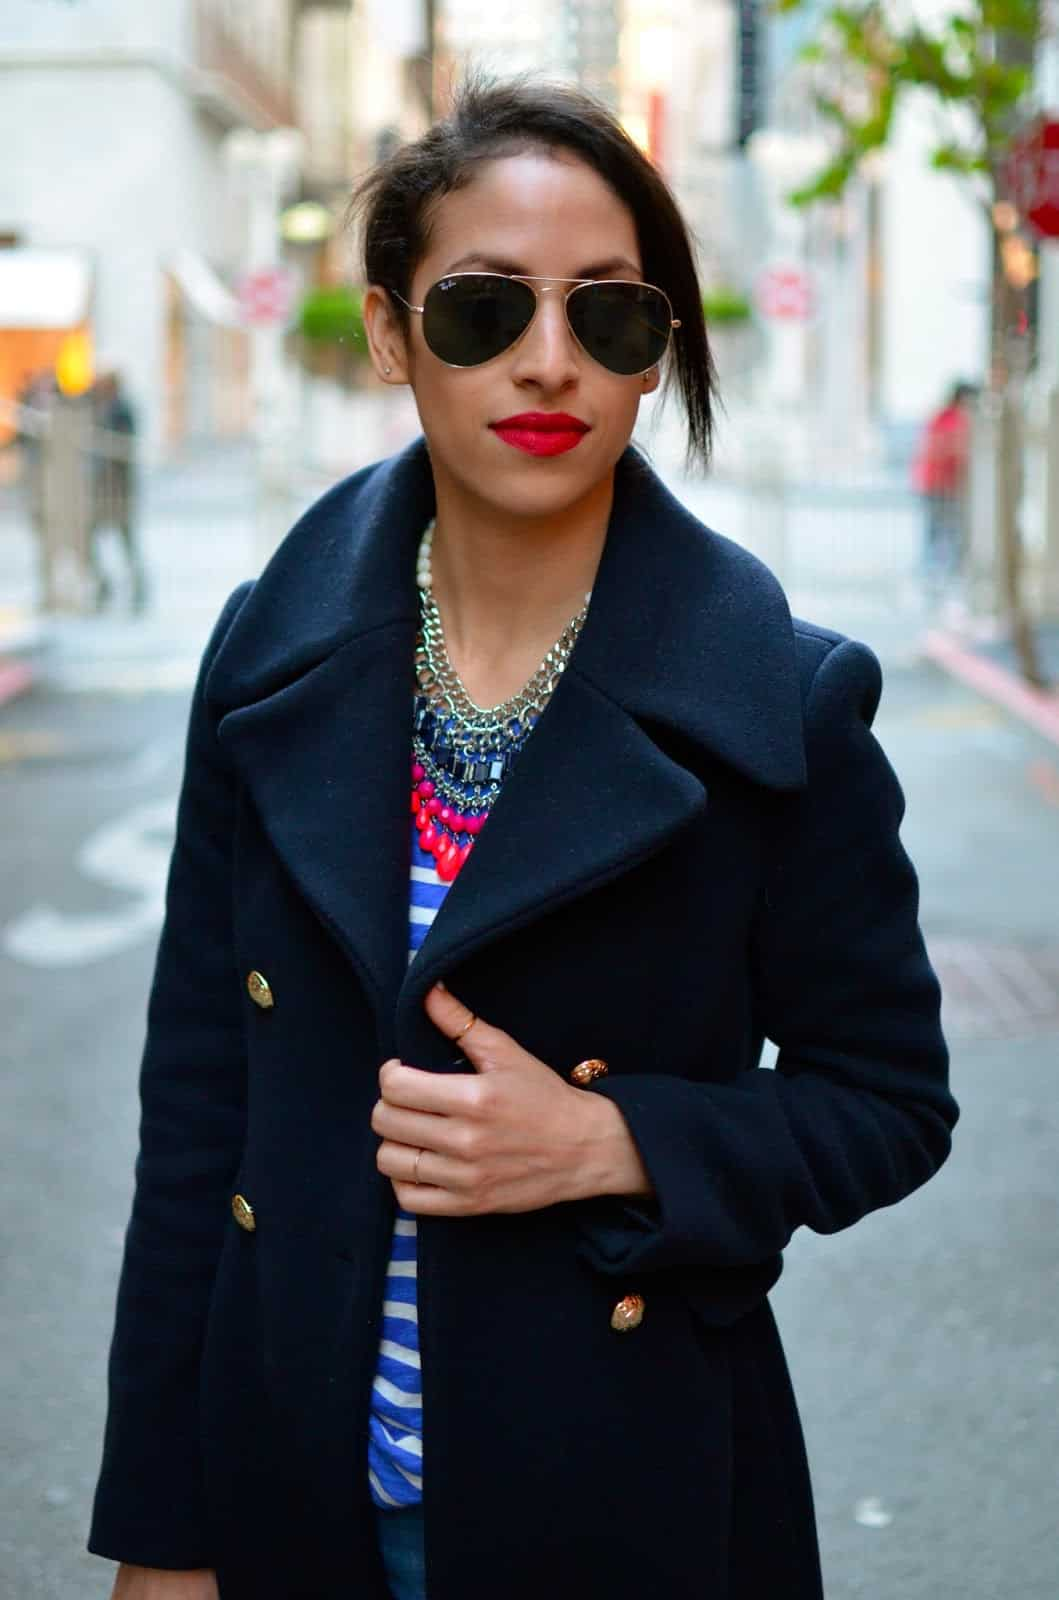 Image result for street style red pout